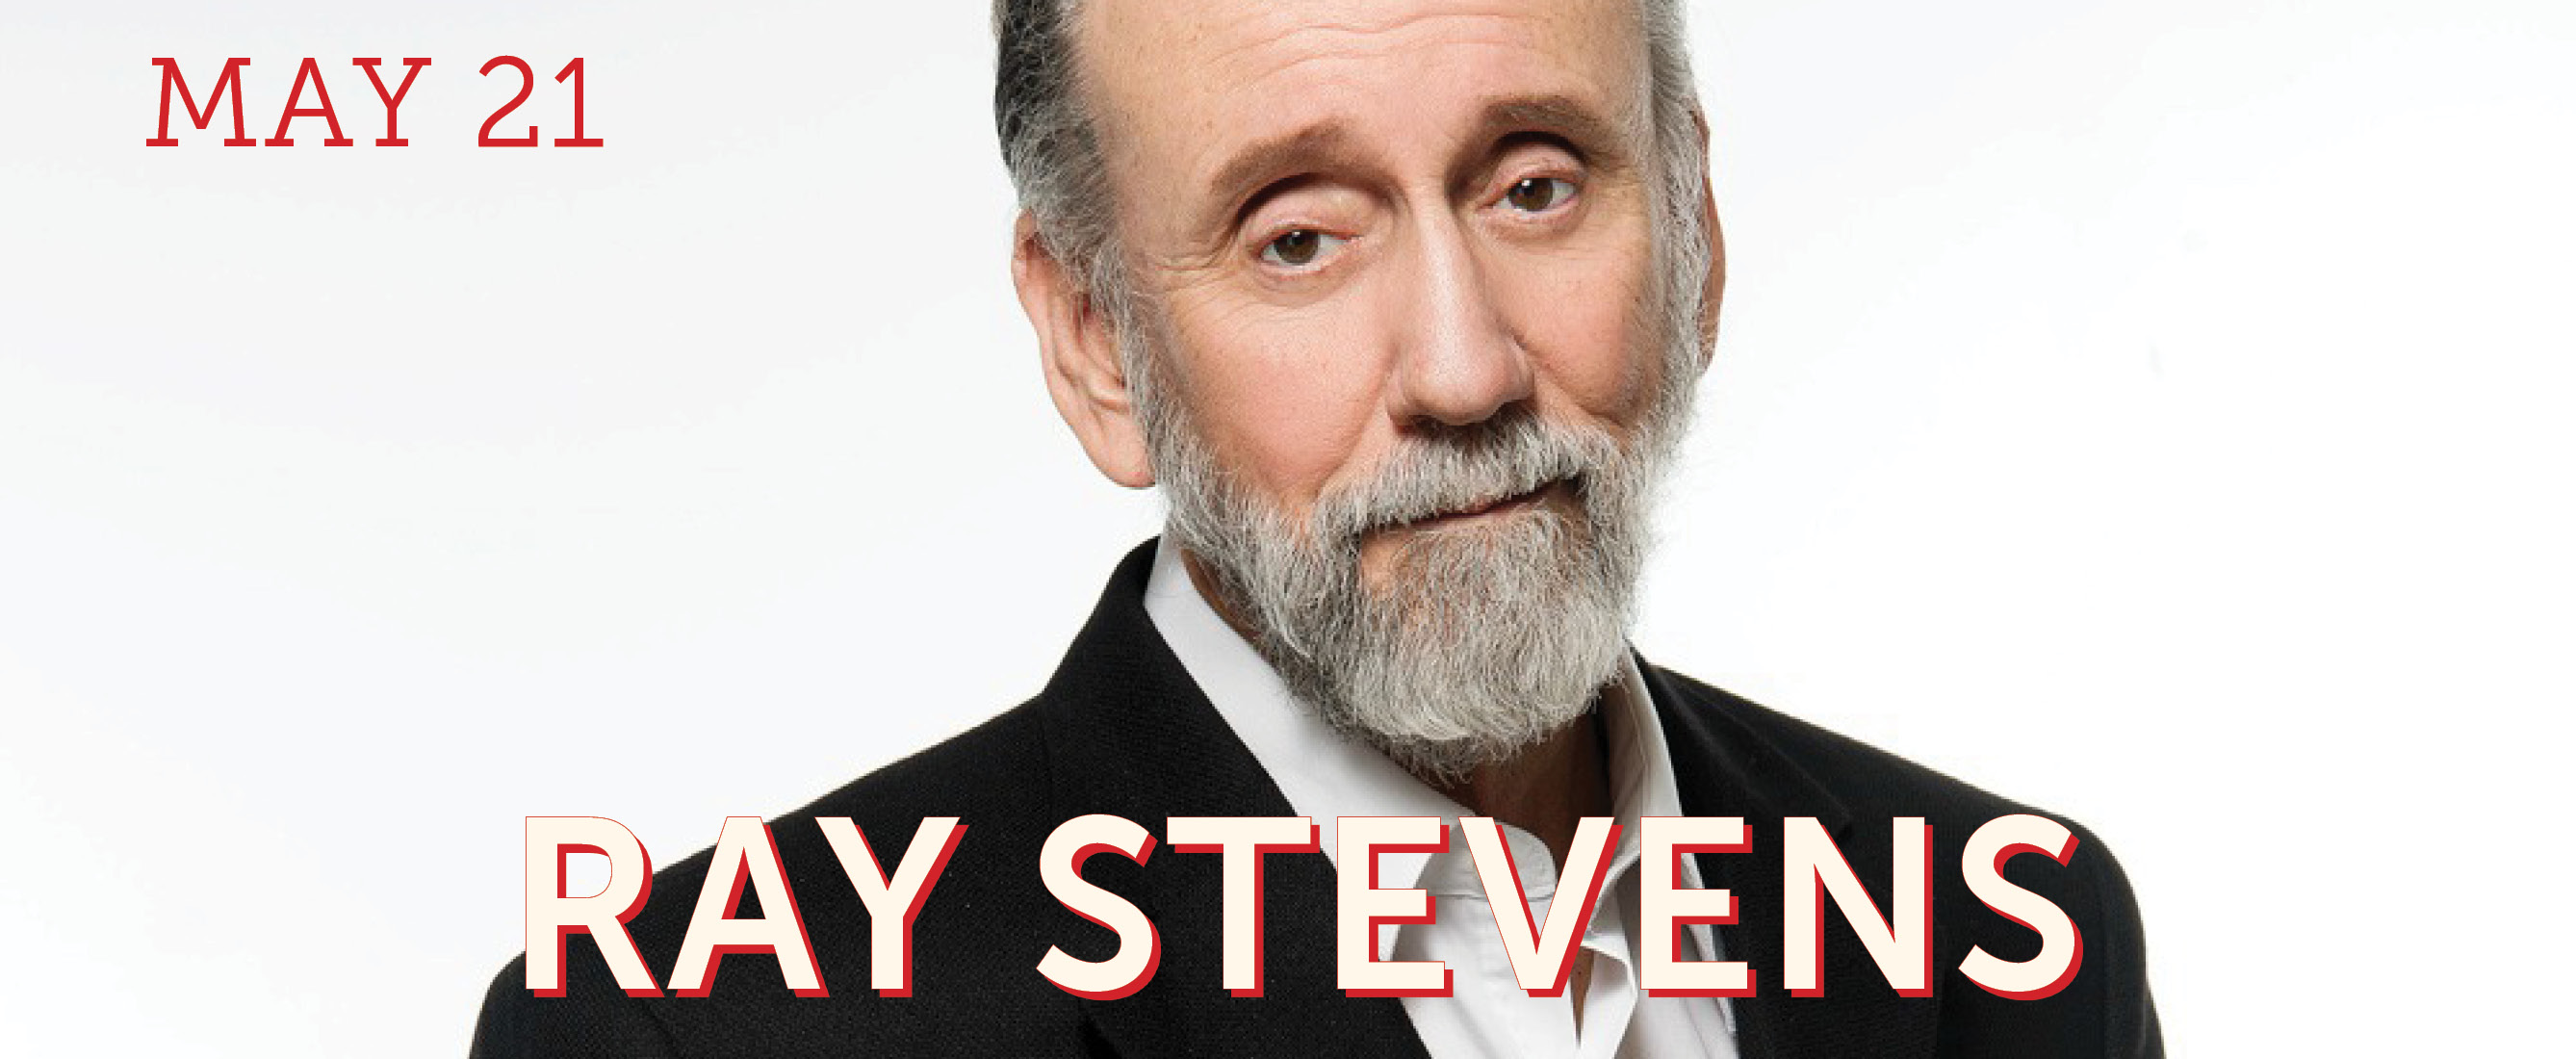 The Haircut Song By Ray Stevens